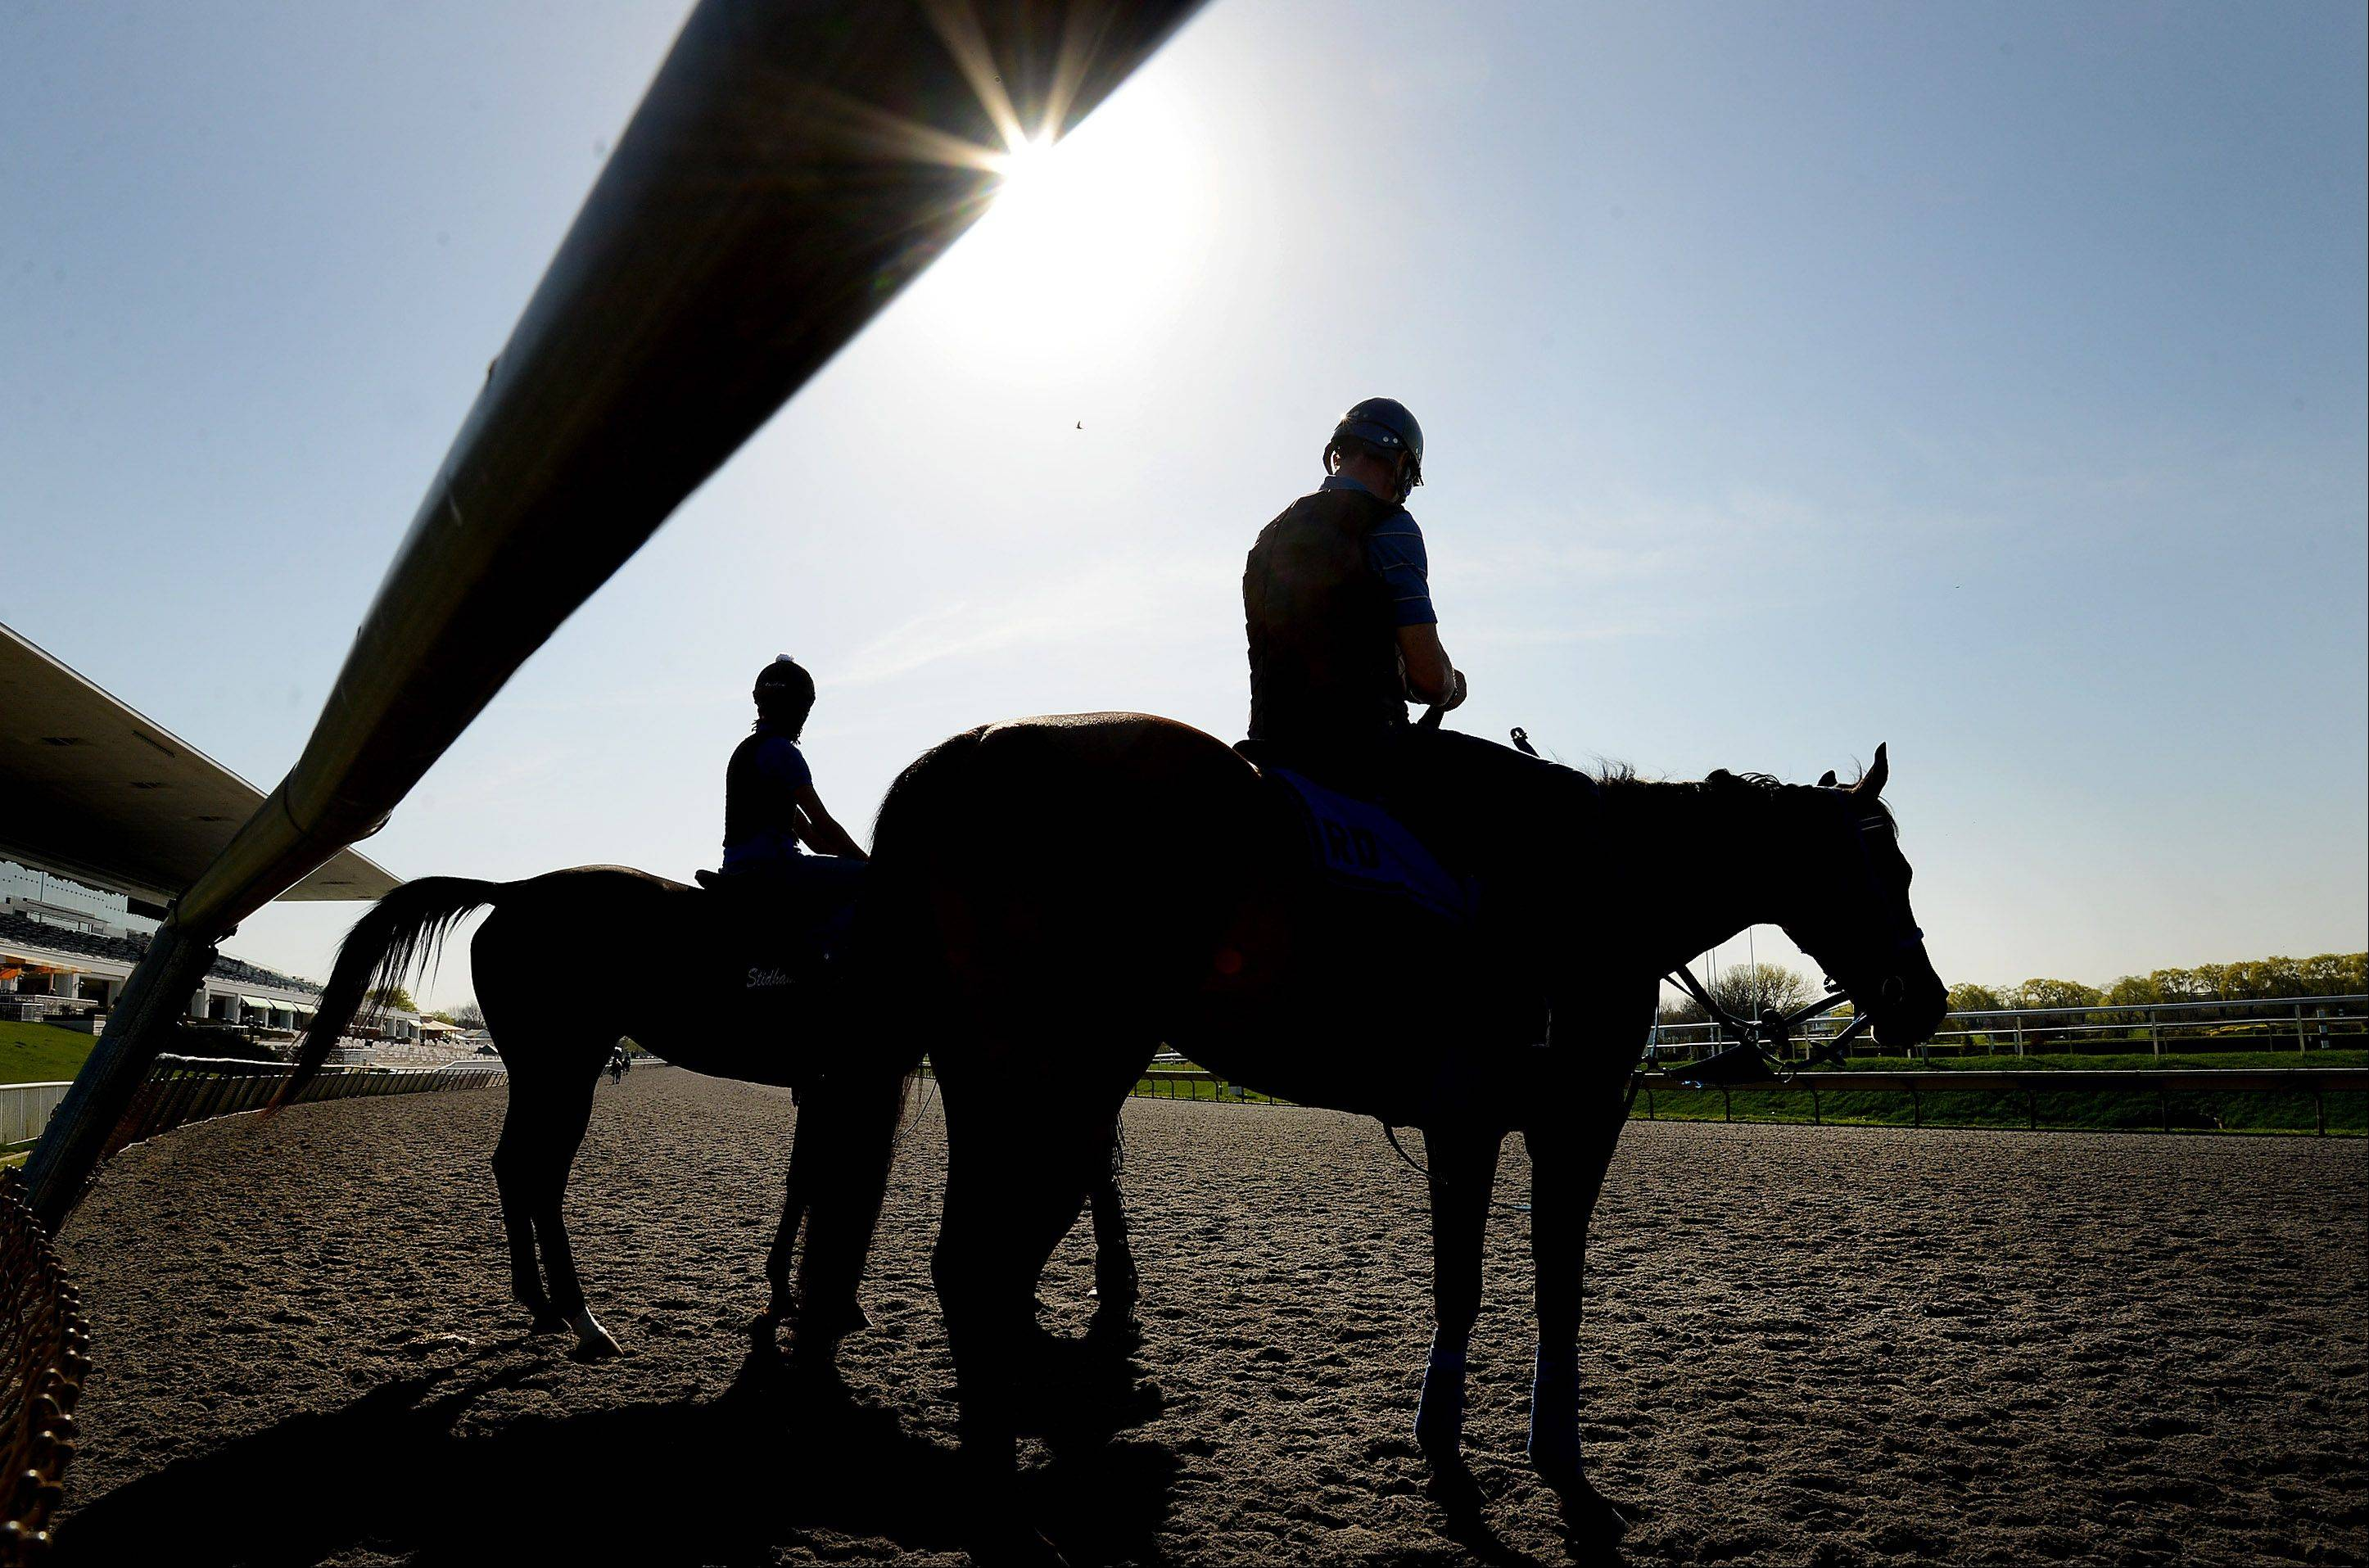 Horses take to the track in preparation for opening day at Arlington International Racecourse. The track opens its 89-meet season at 3 p.m. Friday, running through Labor Day weekend.